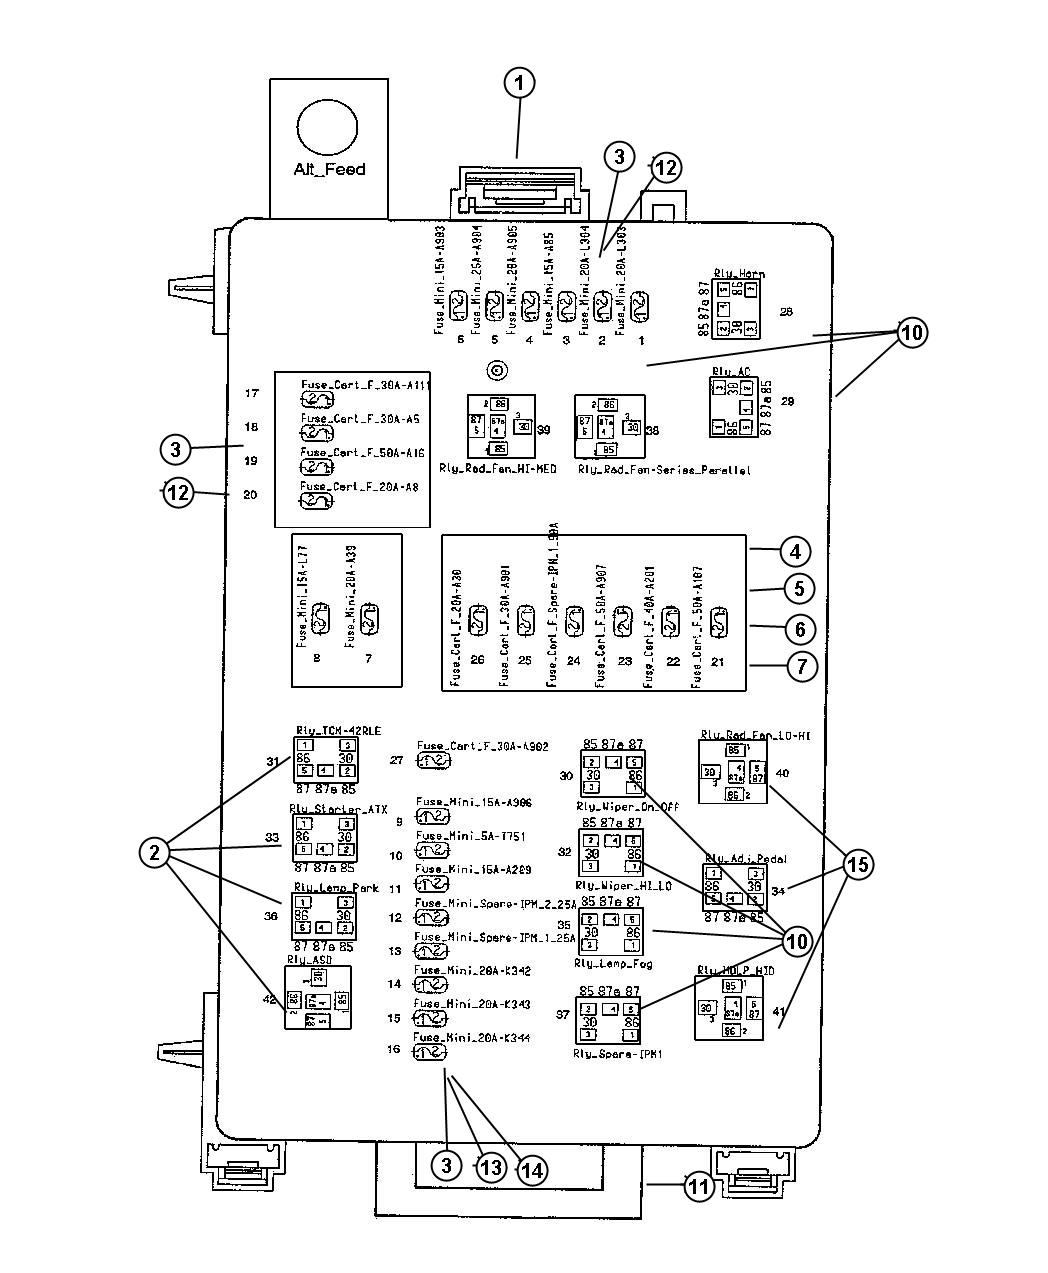 hight resolution of fuse box map 130x300 2005 dodge magnum underhood wiring diagrams 2005 dodge magnum pump engine diagram